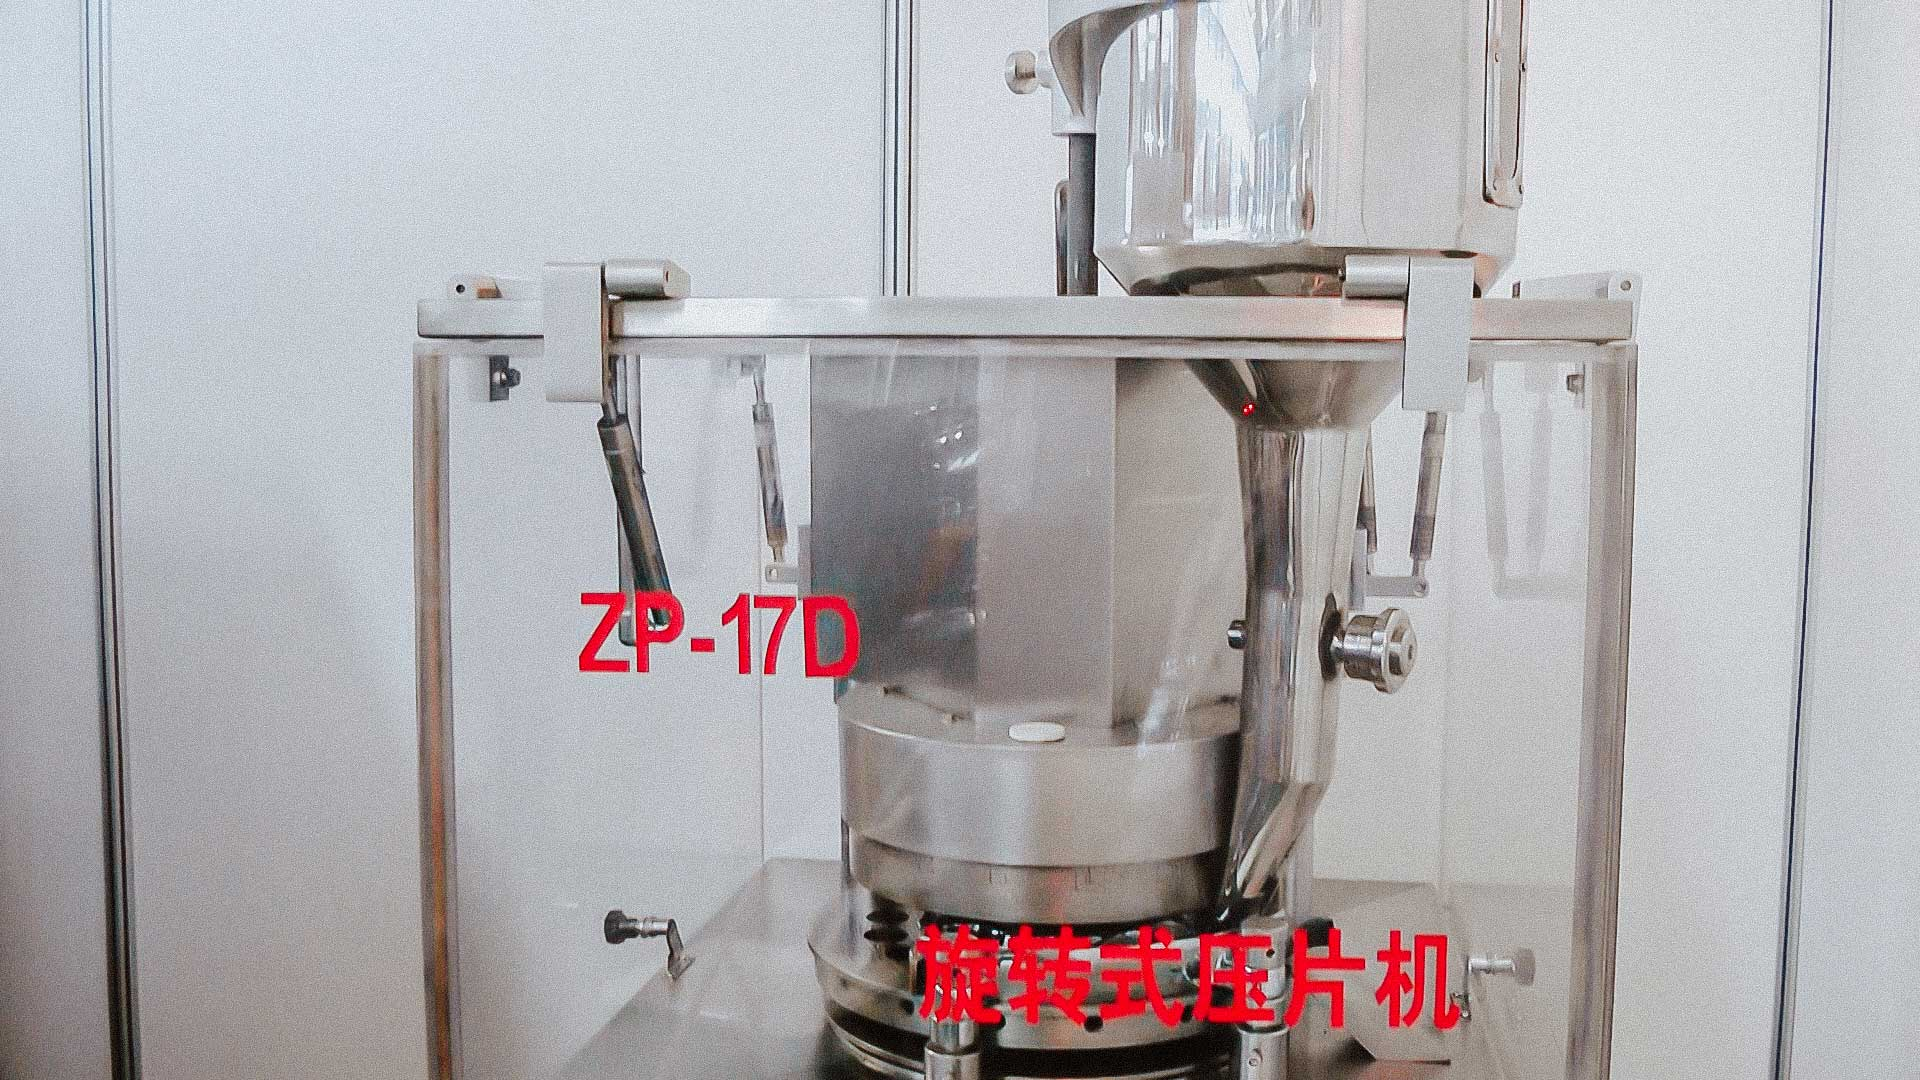 Automatic rotary tablet press for manufacture of tablets from powder in pharmaceutical